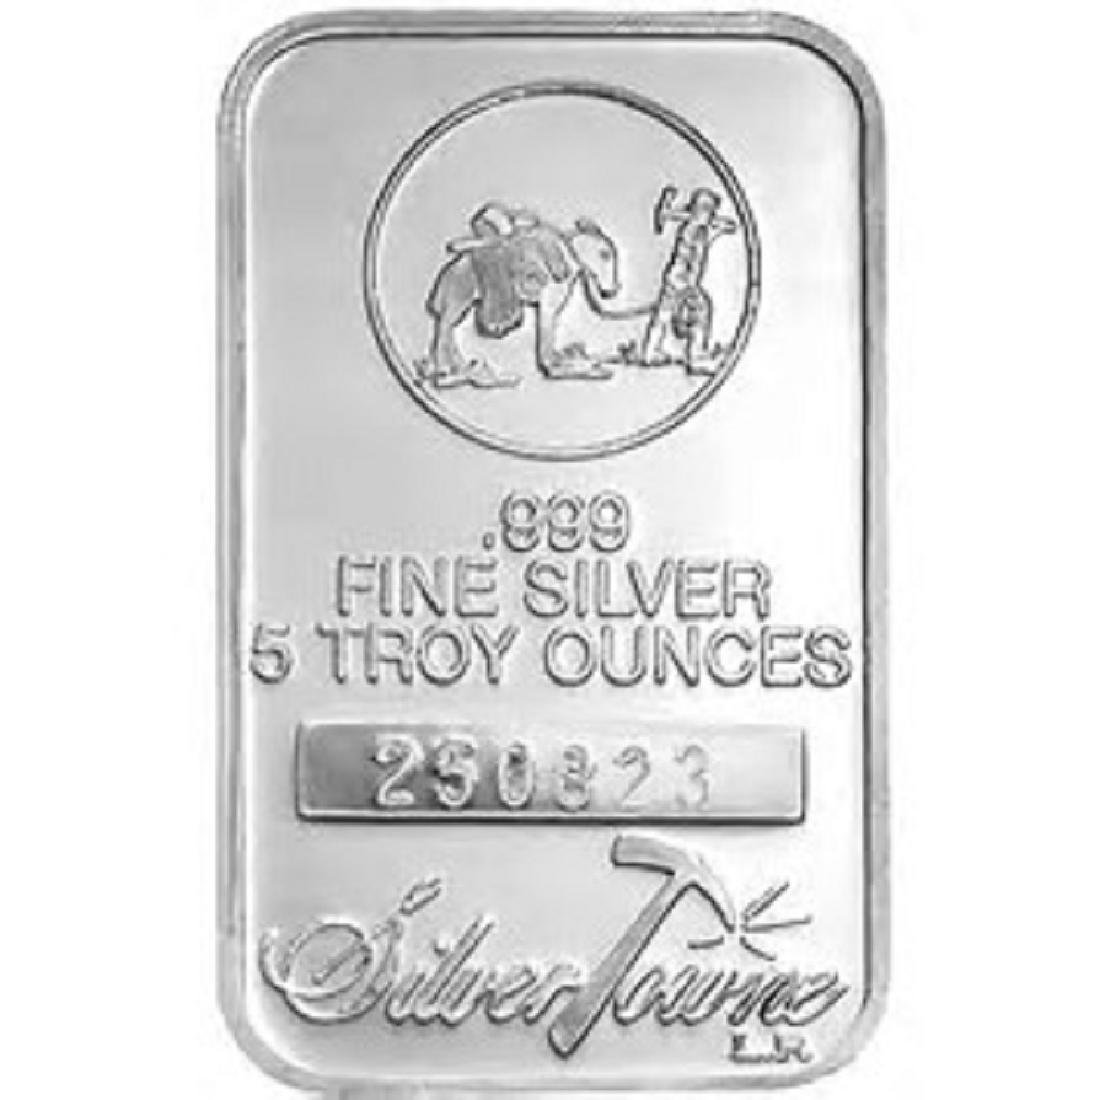 5 oz. Prospector Silver Bar - .999 pure